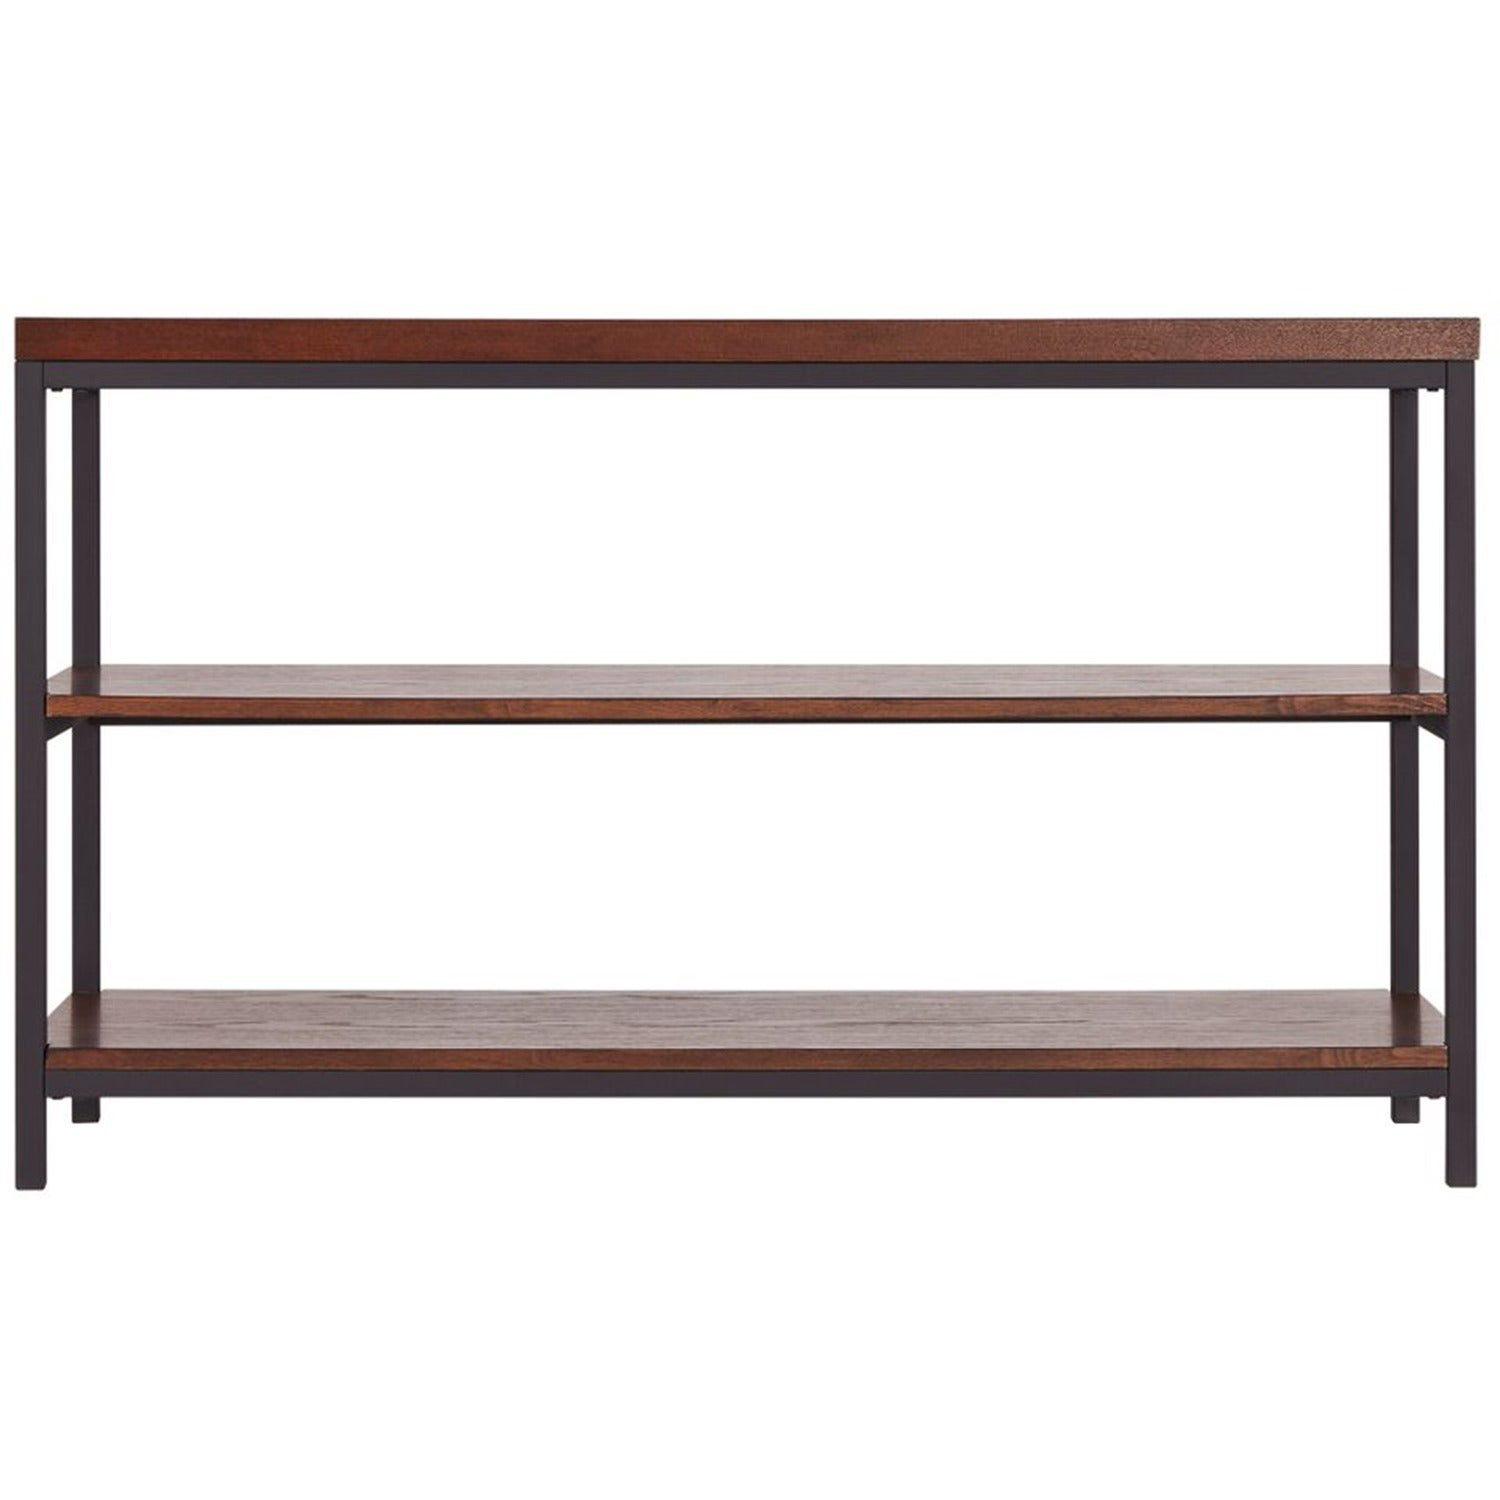 Shop Somme Rustic Metal Frame Storage Sofa Table TV Stand By INSPIRE - Metal table with shelves